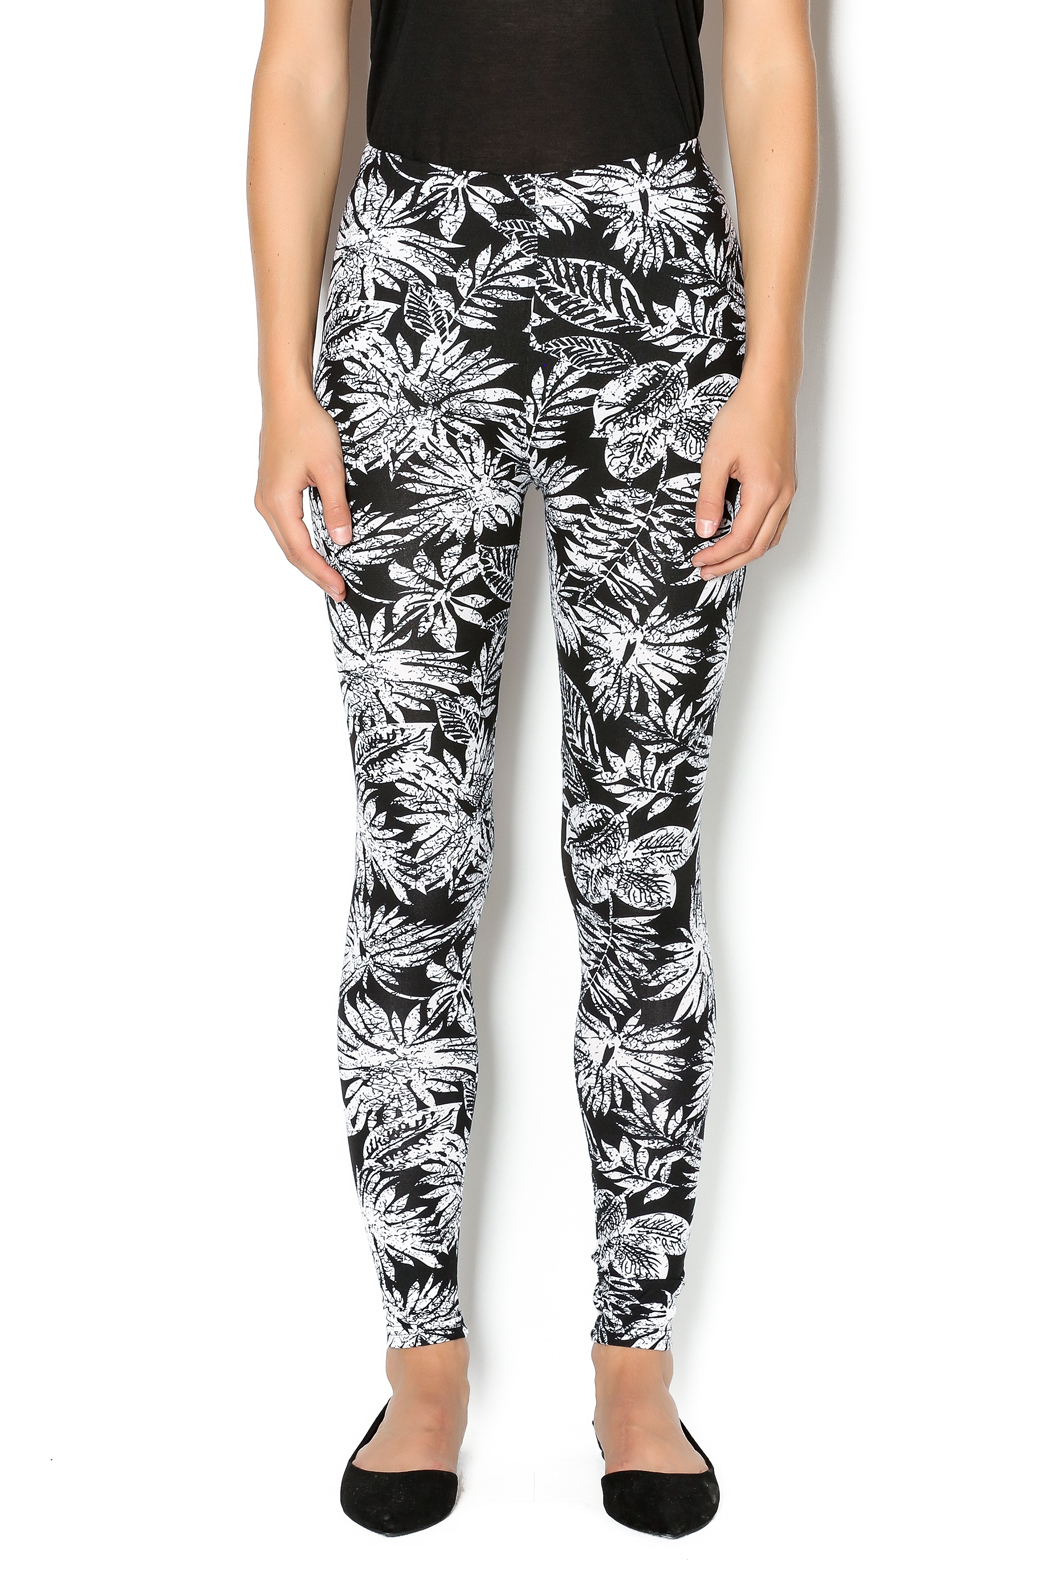 2f5c76d0fe869 Shosho Tropical Print Leggings from New Jersey by Making Waves ...